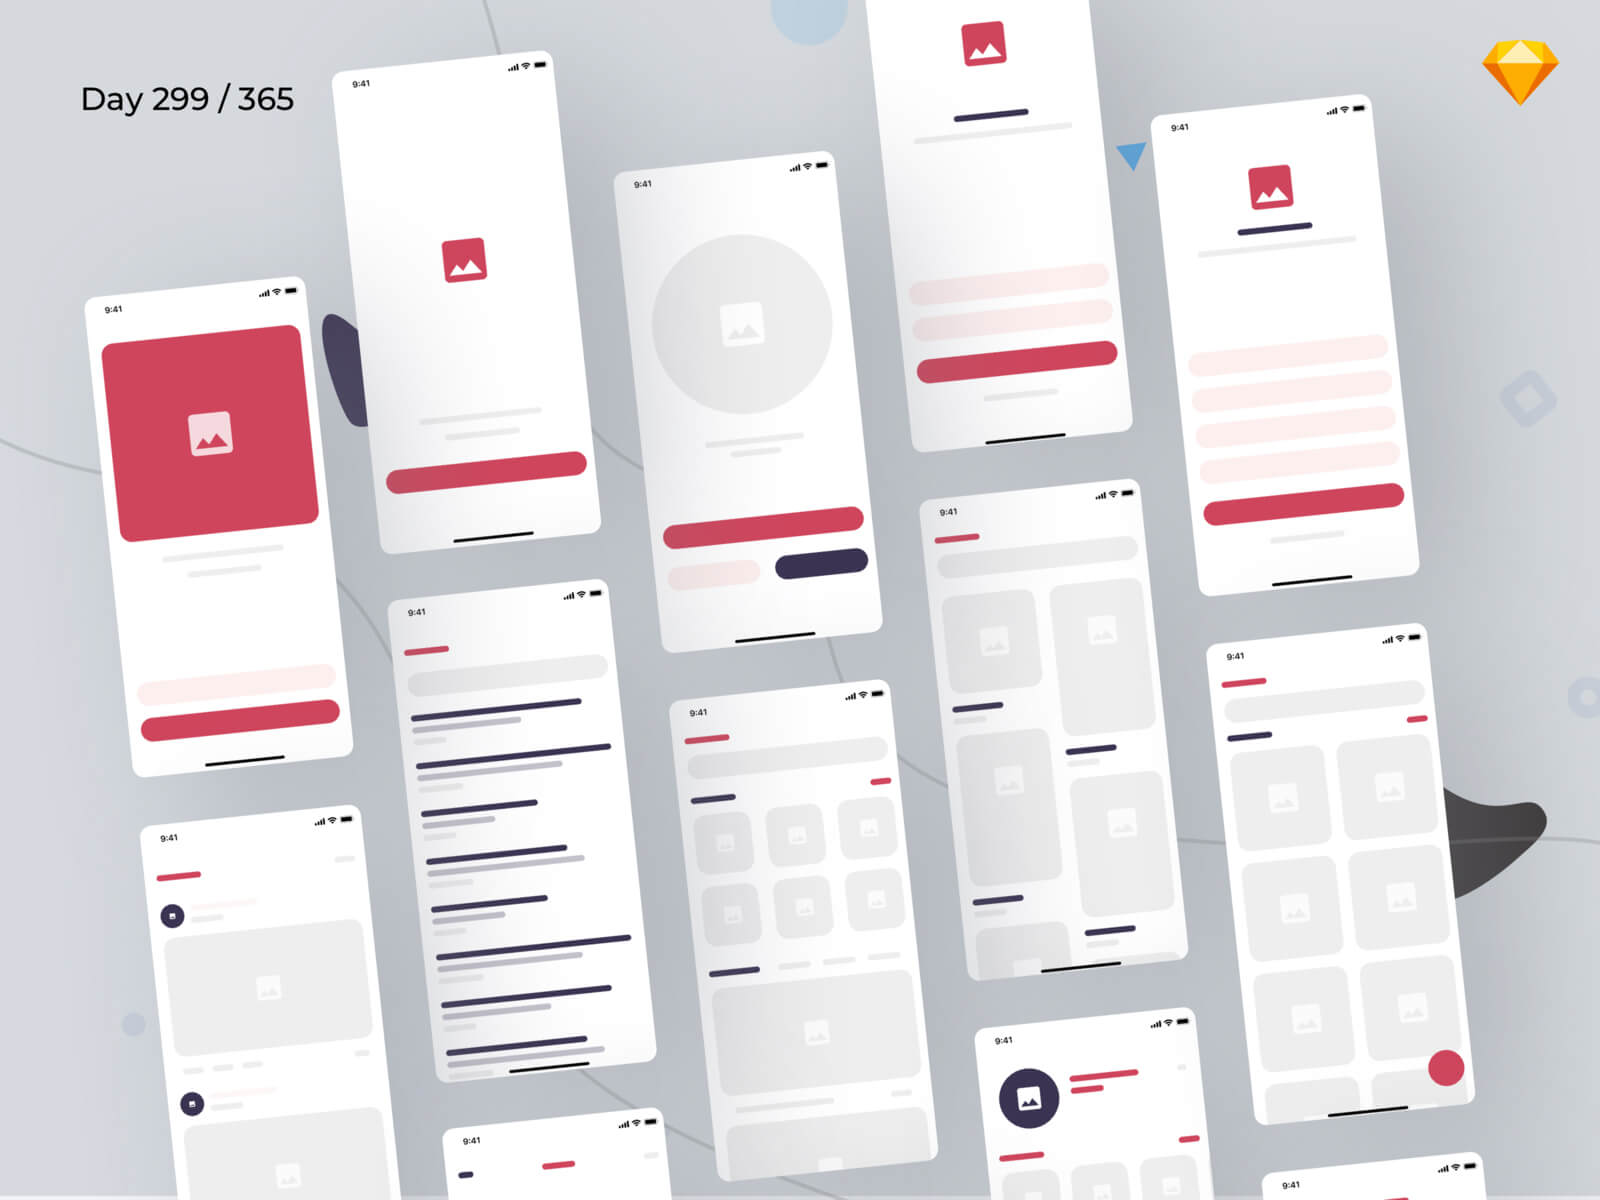 eBlocks - eCommerce Wireframe Kit iOS | Day 299/365 - Project365 cover image